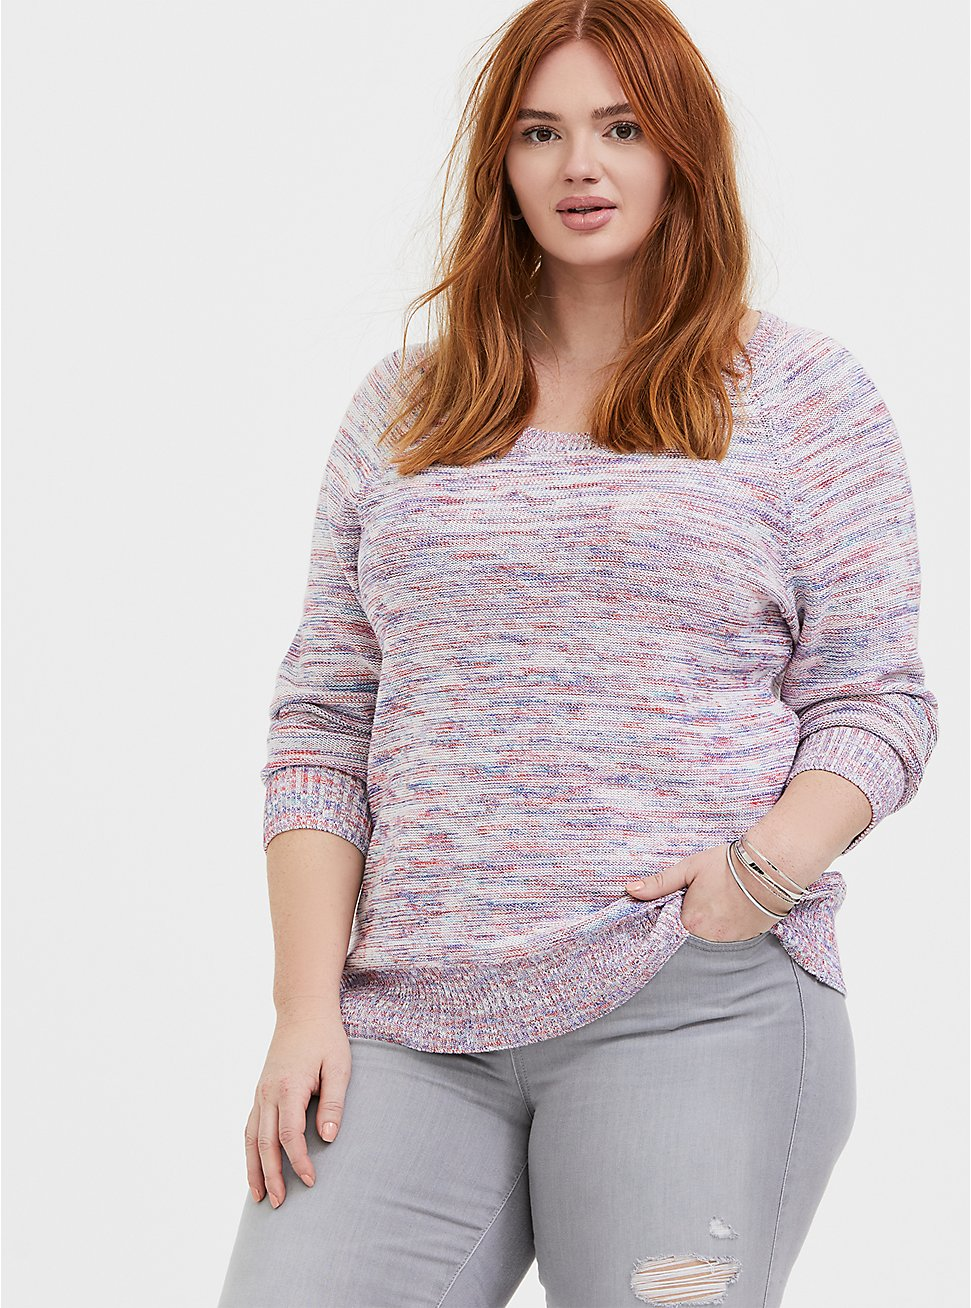 Multicolor Confetti Yarn Pullover Sweater , , hi-res